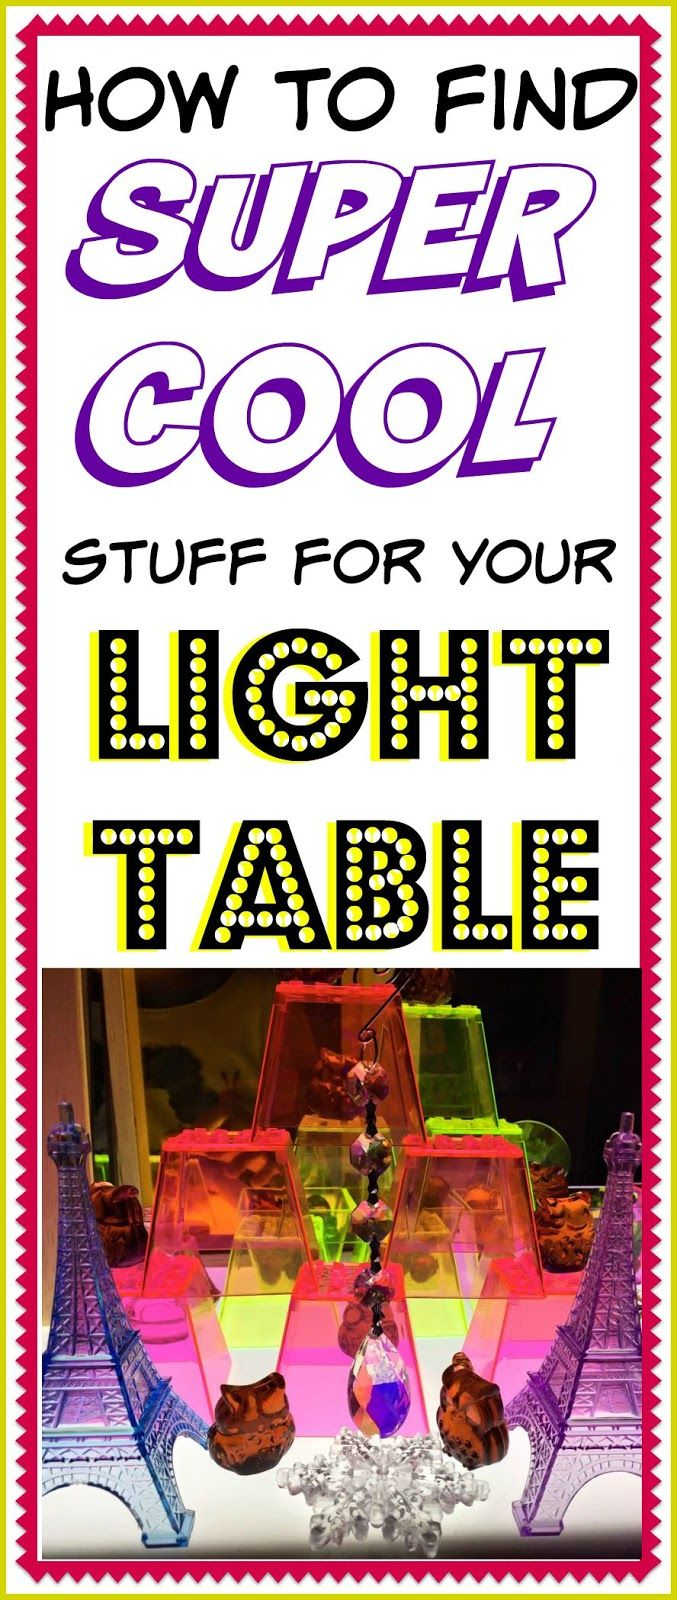 Child craft light table - How To Find Super Cool Stuff For Your Light Table